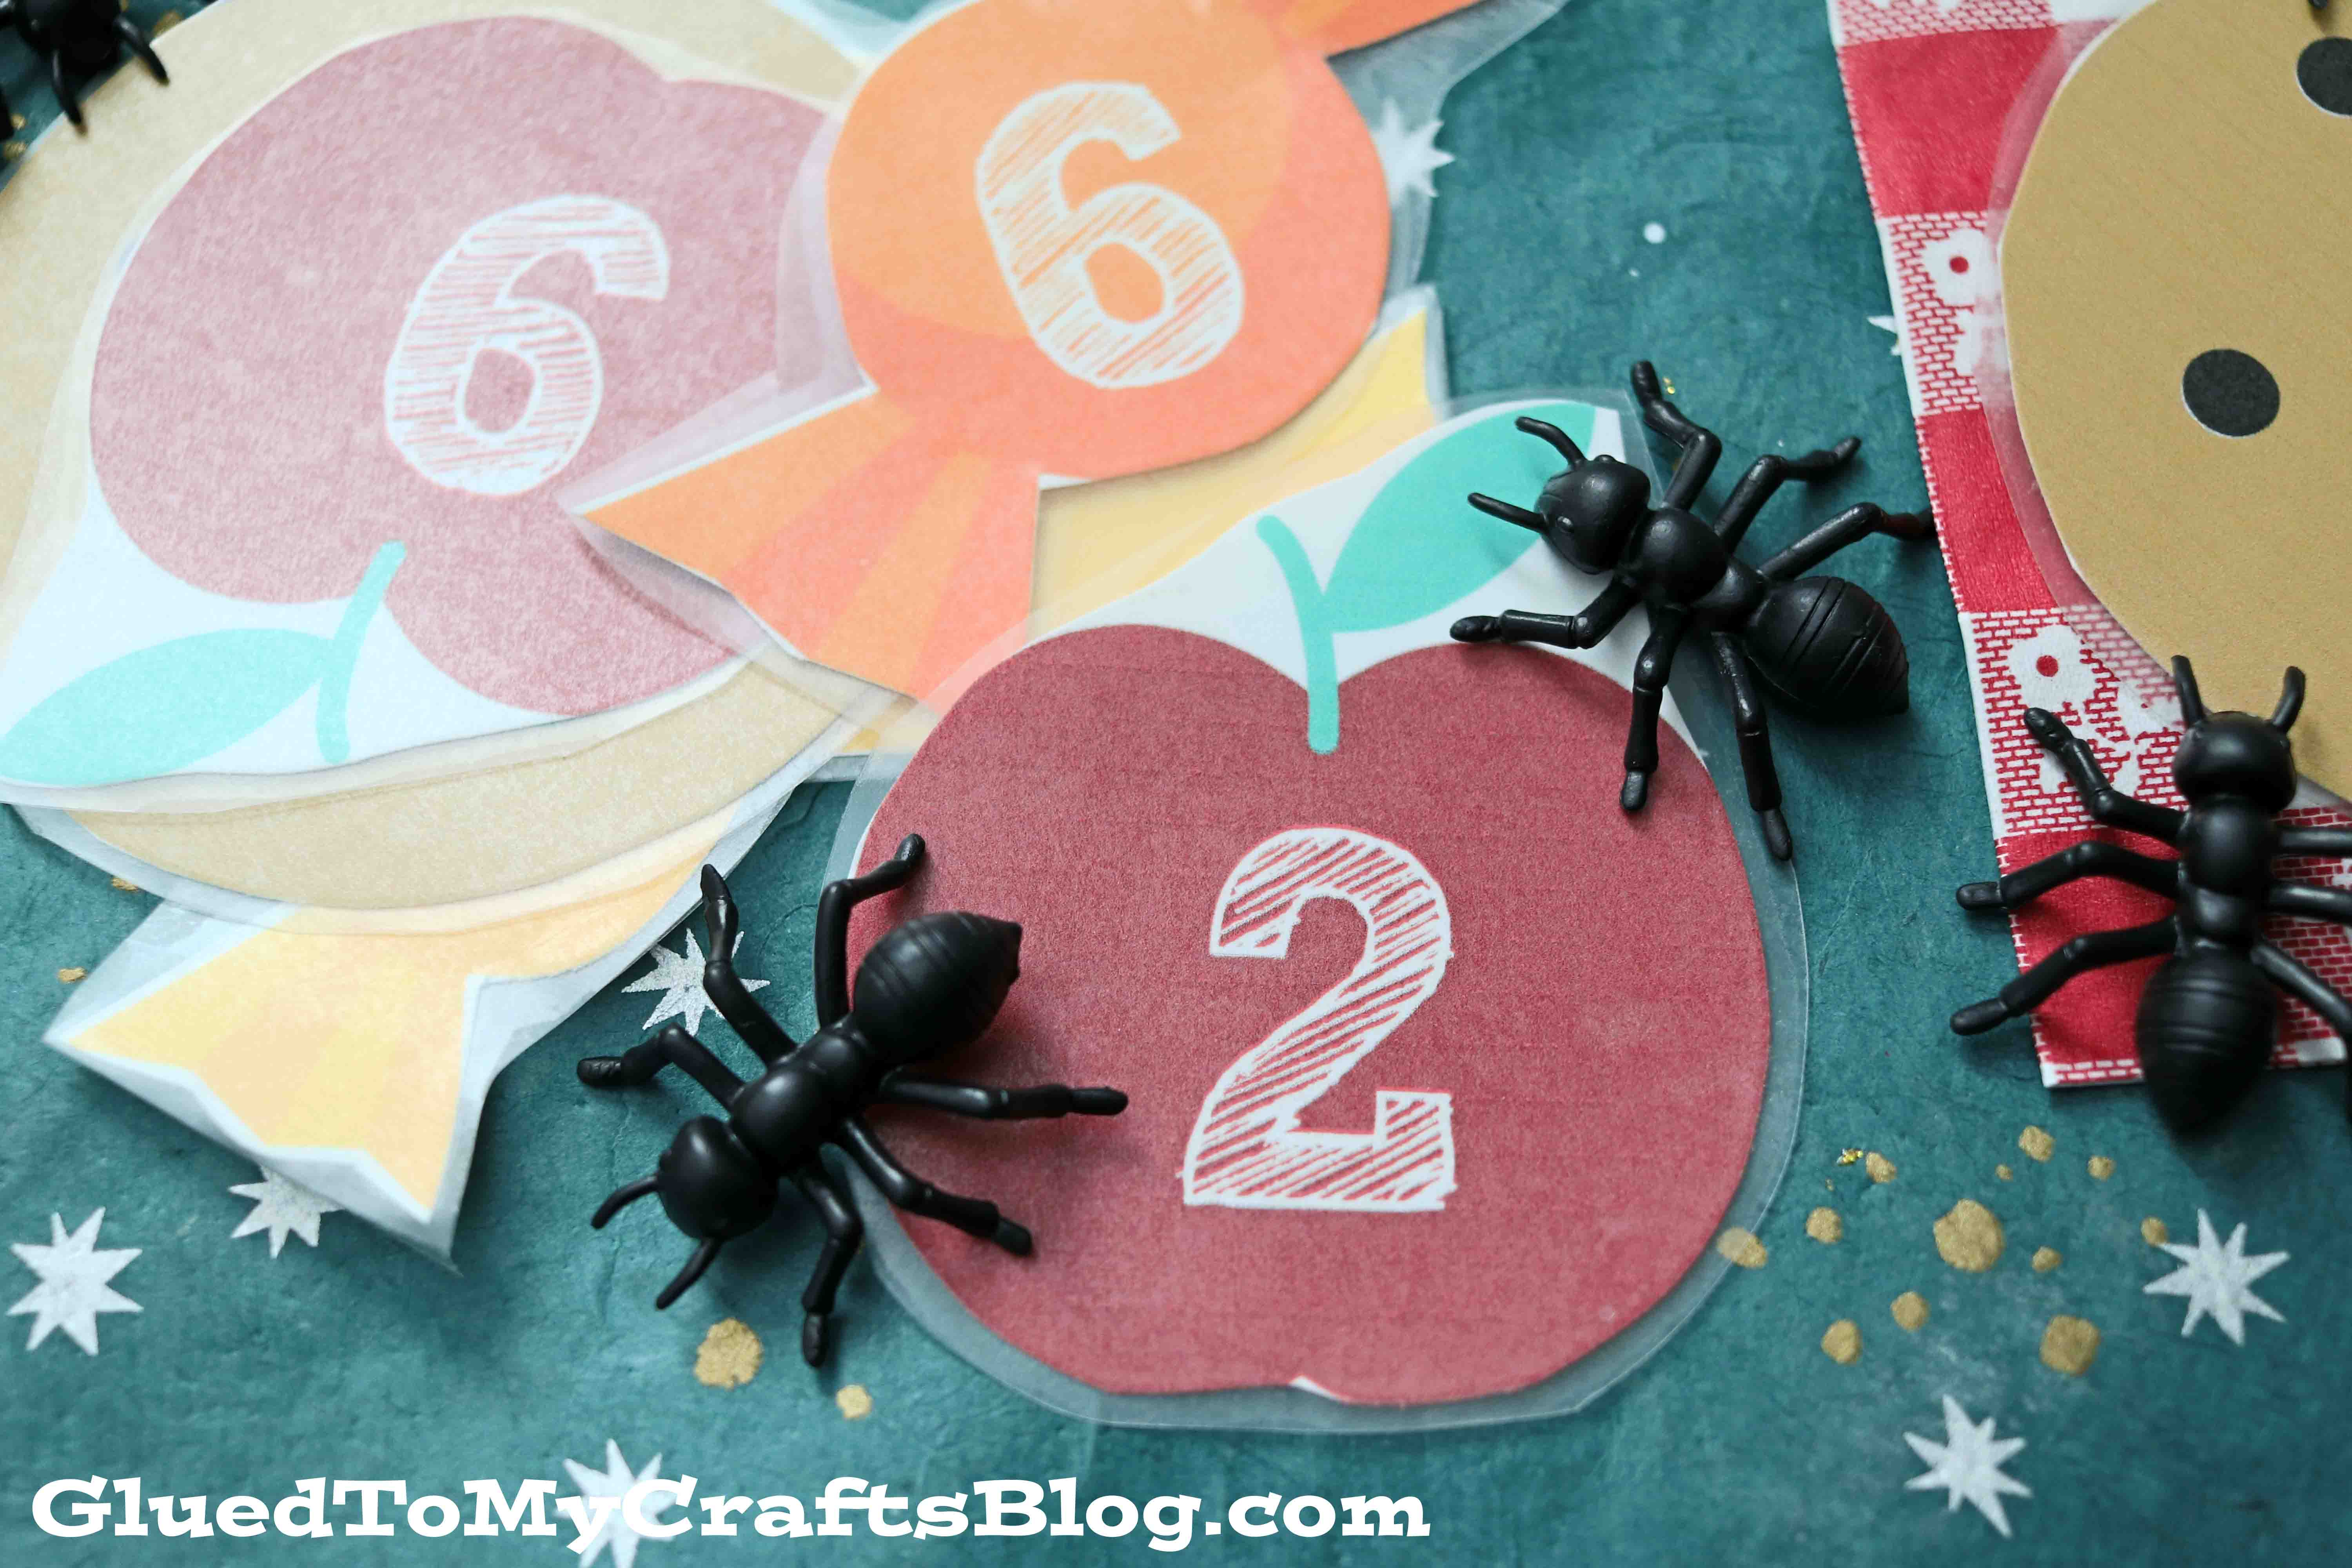 Counting Ants Game For Toddlers - Free Printable Included